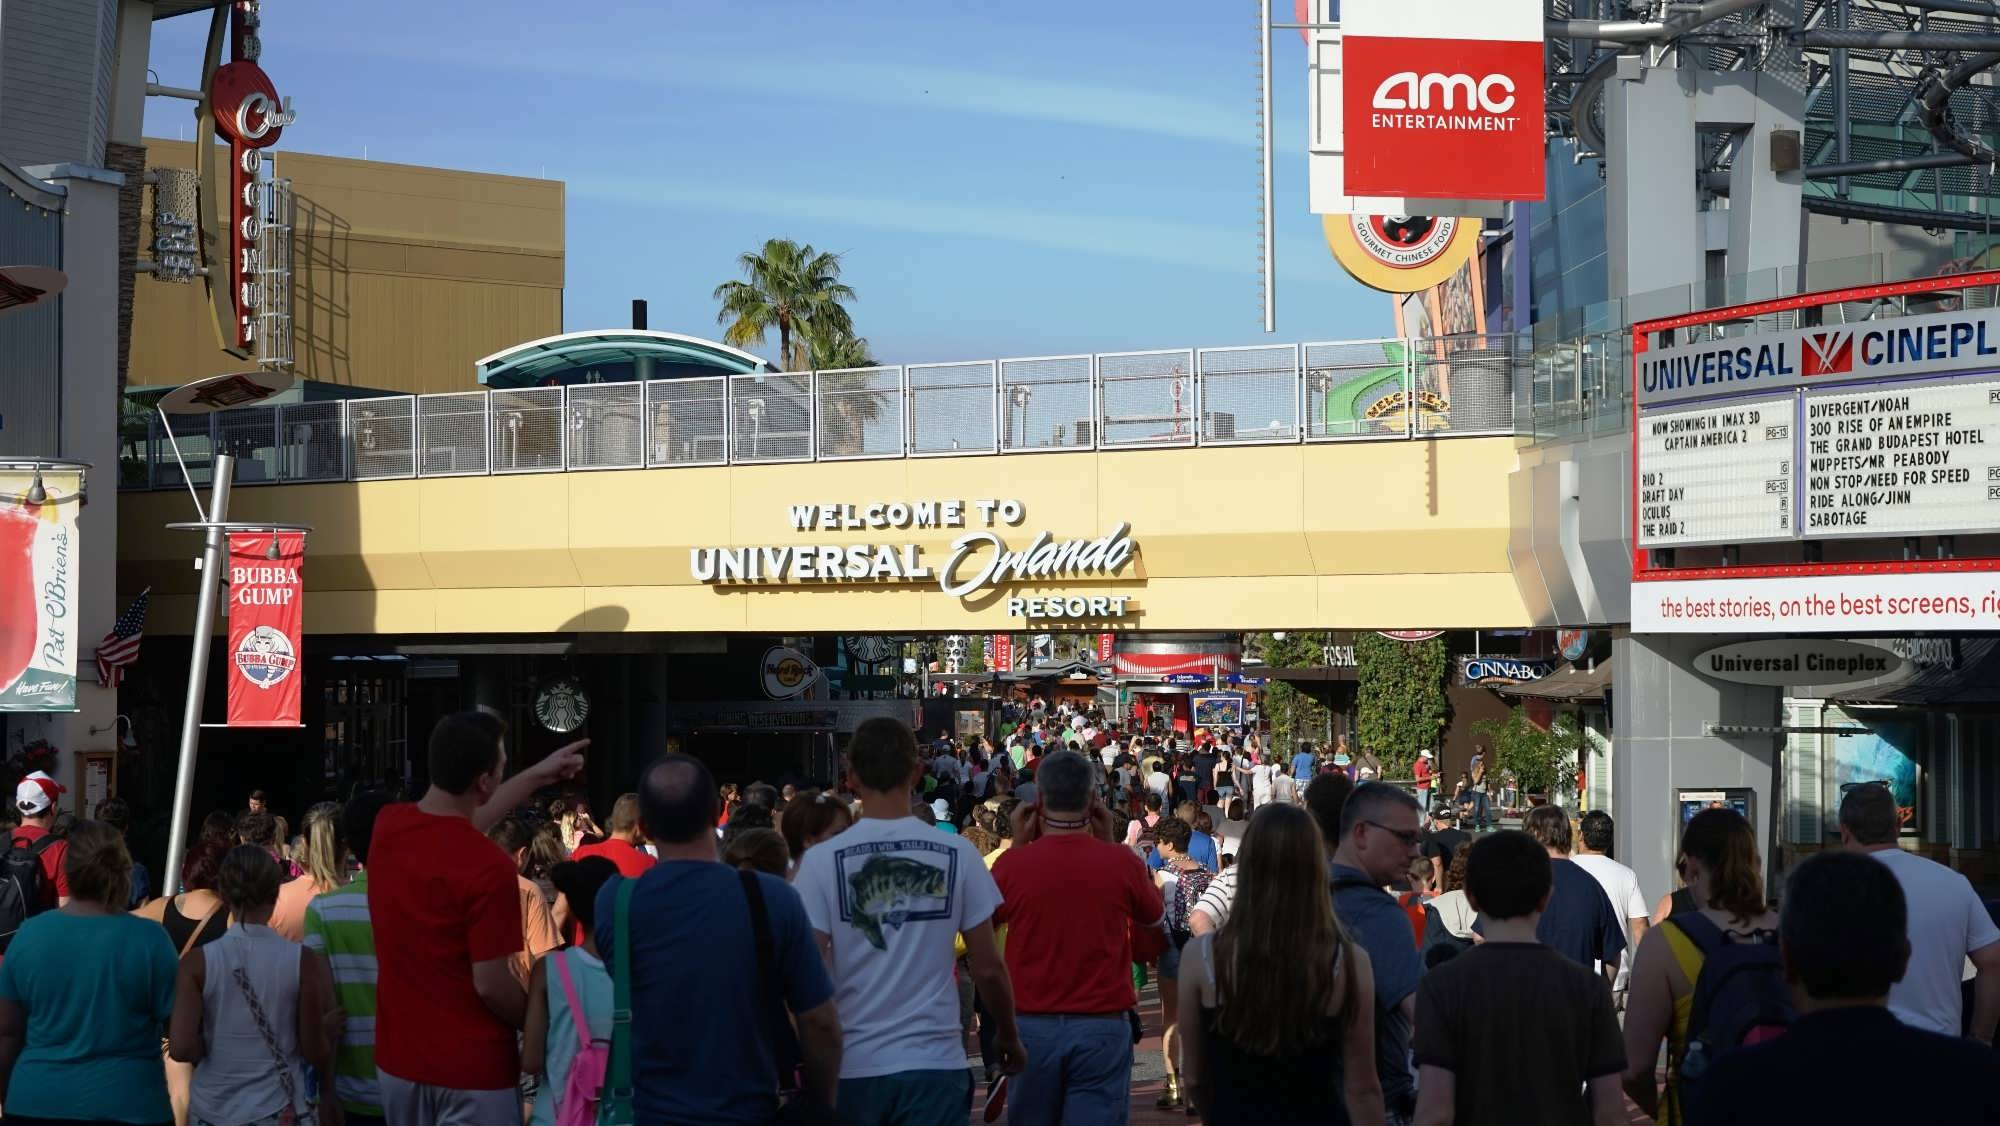 Entering Universal Orlando's CityWalk.